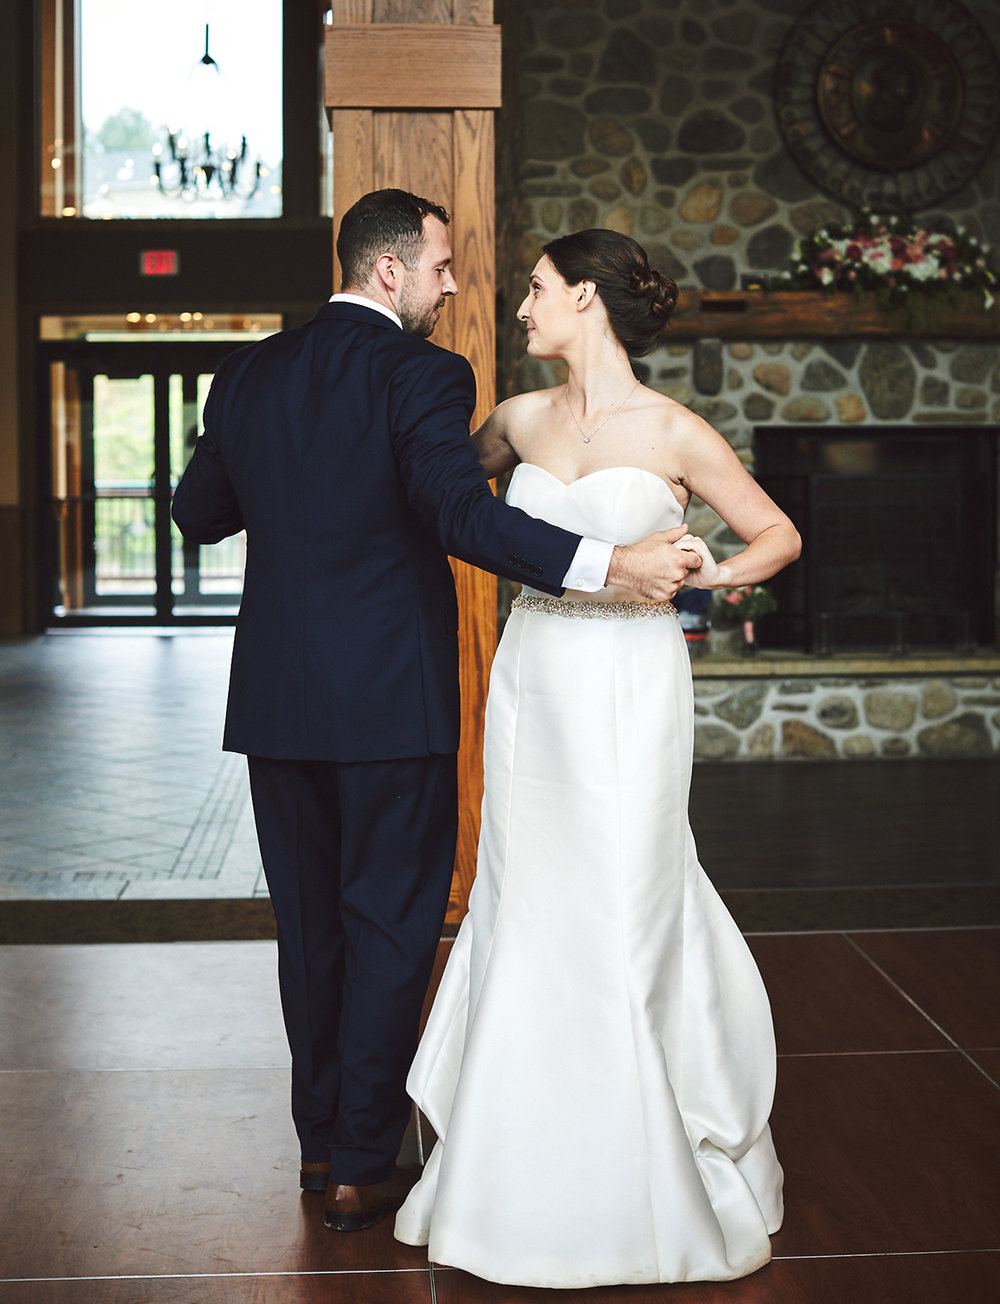 180714_HolidayValleyLodgeWeddingPhotography_By_BriJohnsonWeddings_0134.jpg